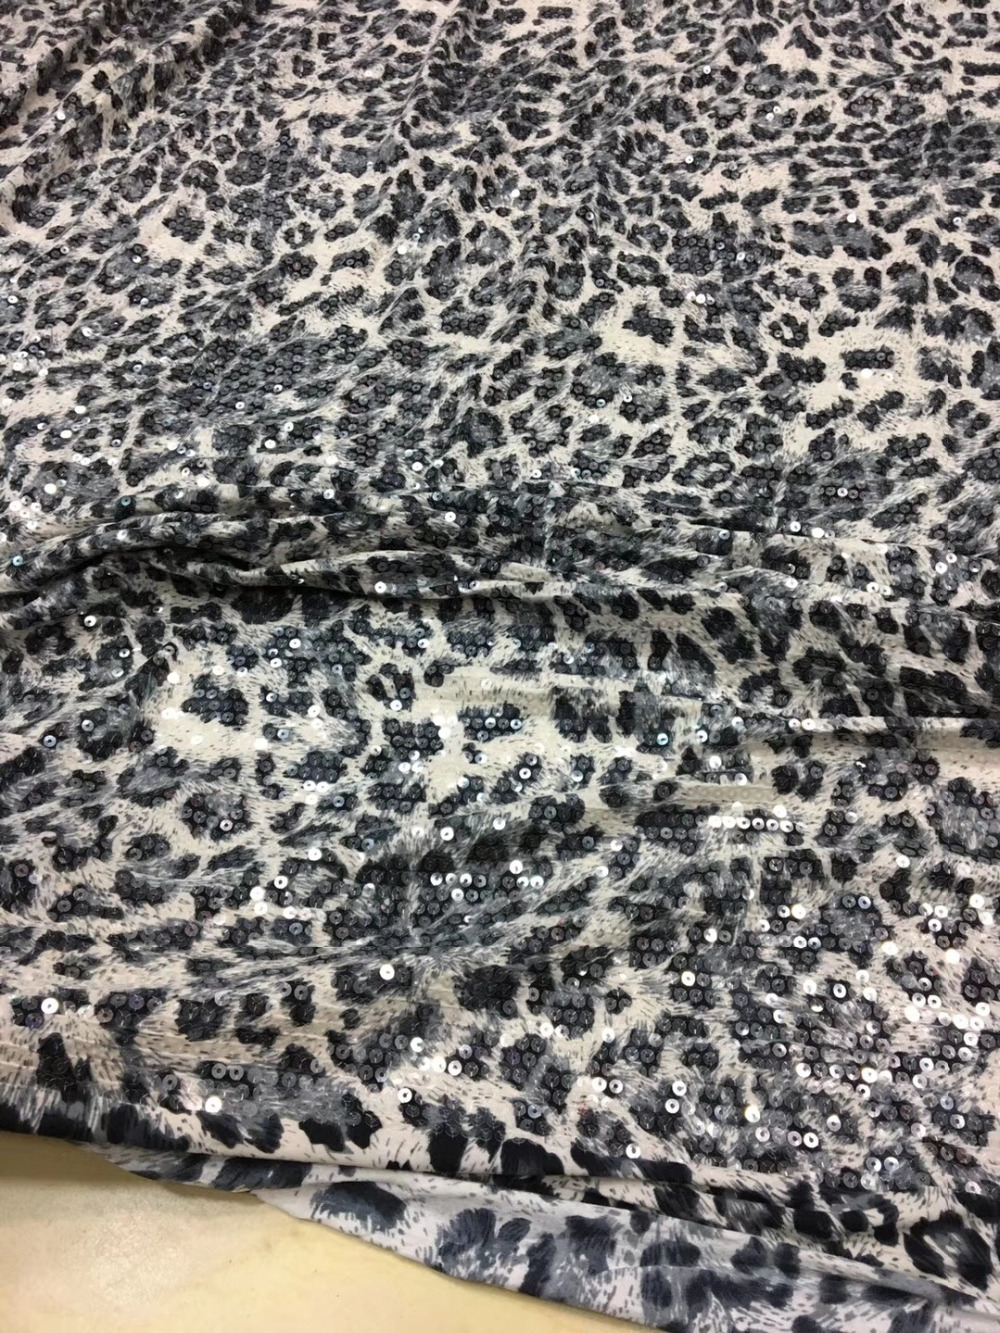 5yards fashion Leopard Print lace fabric 3mm sequins on mesh embroidery lacefor evening dress lace fabric